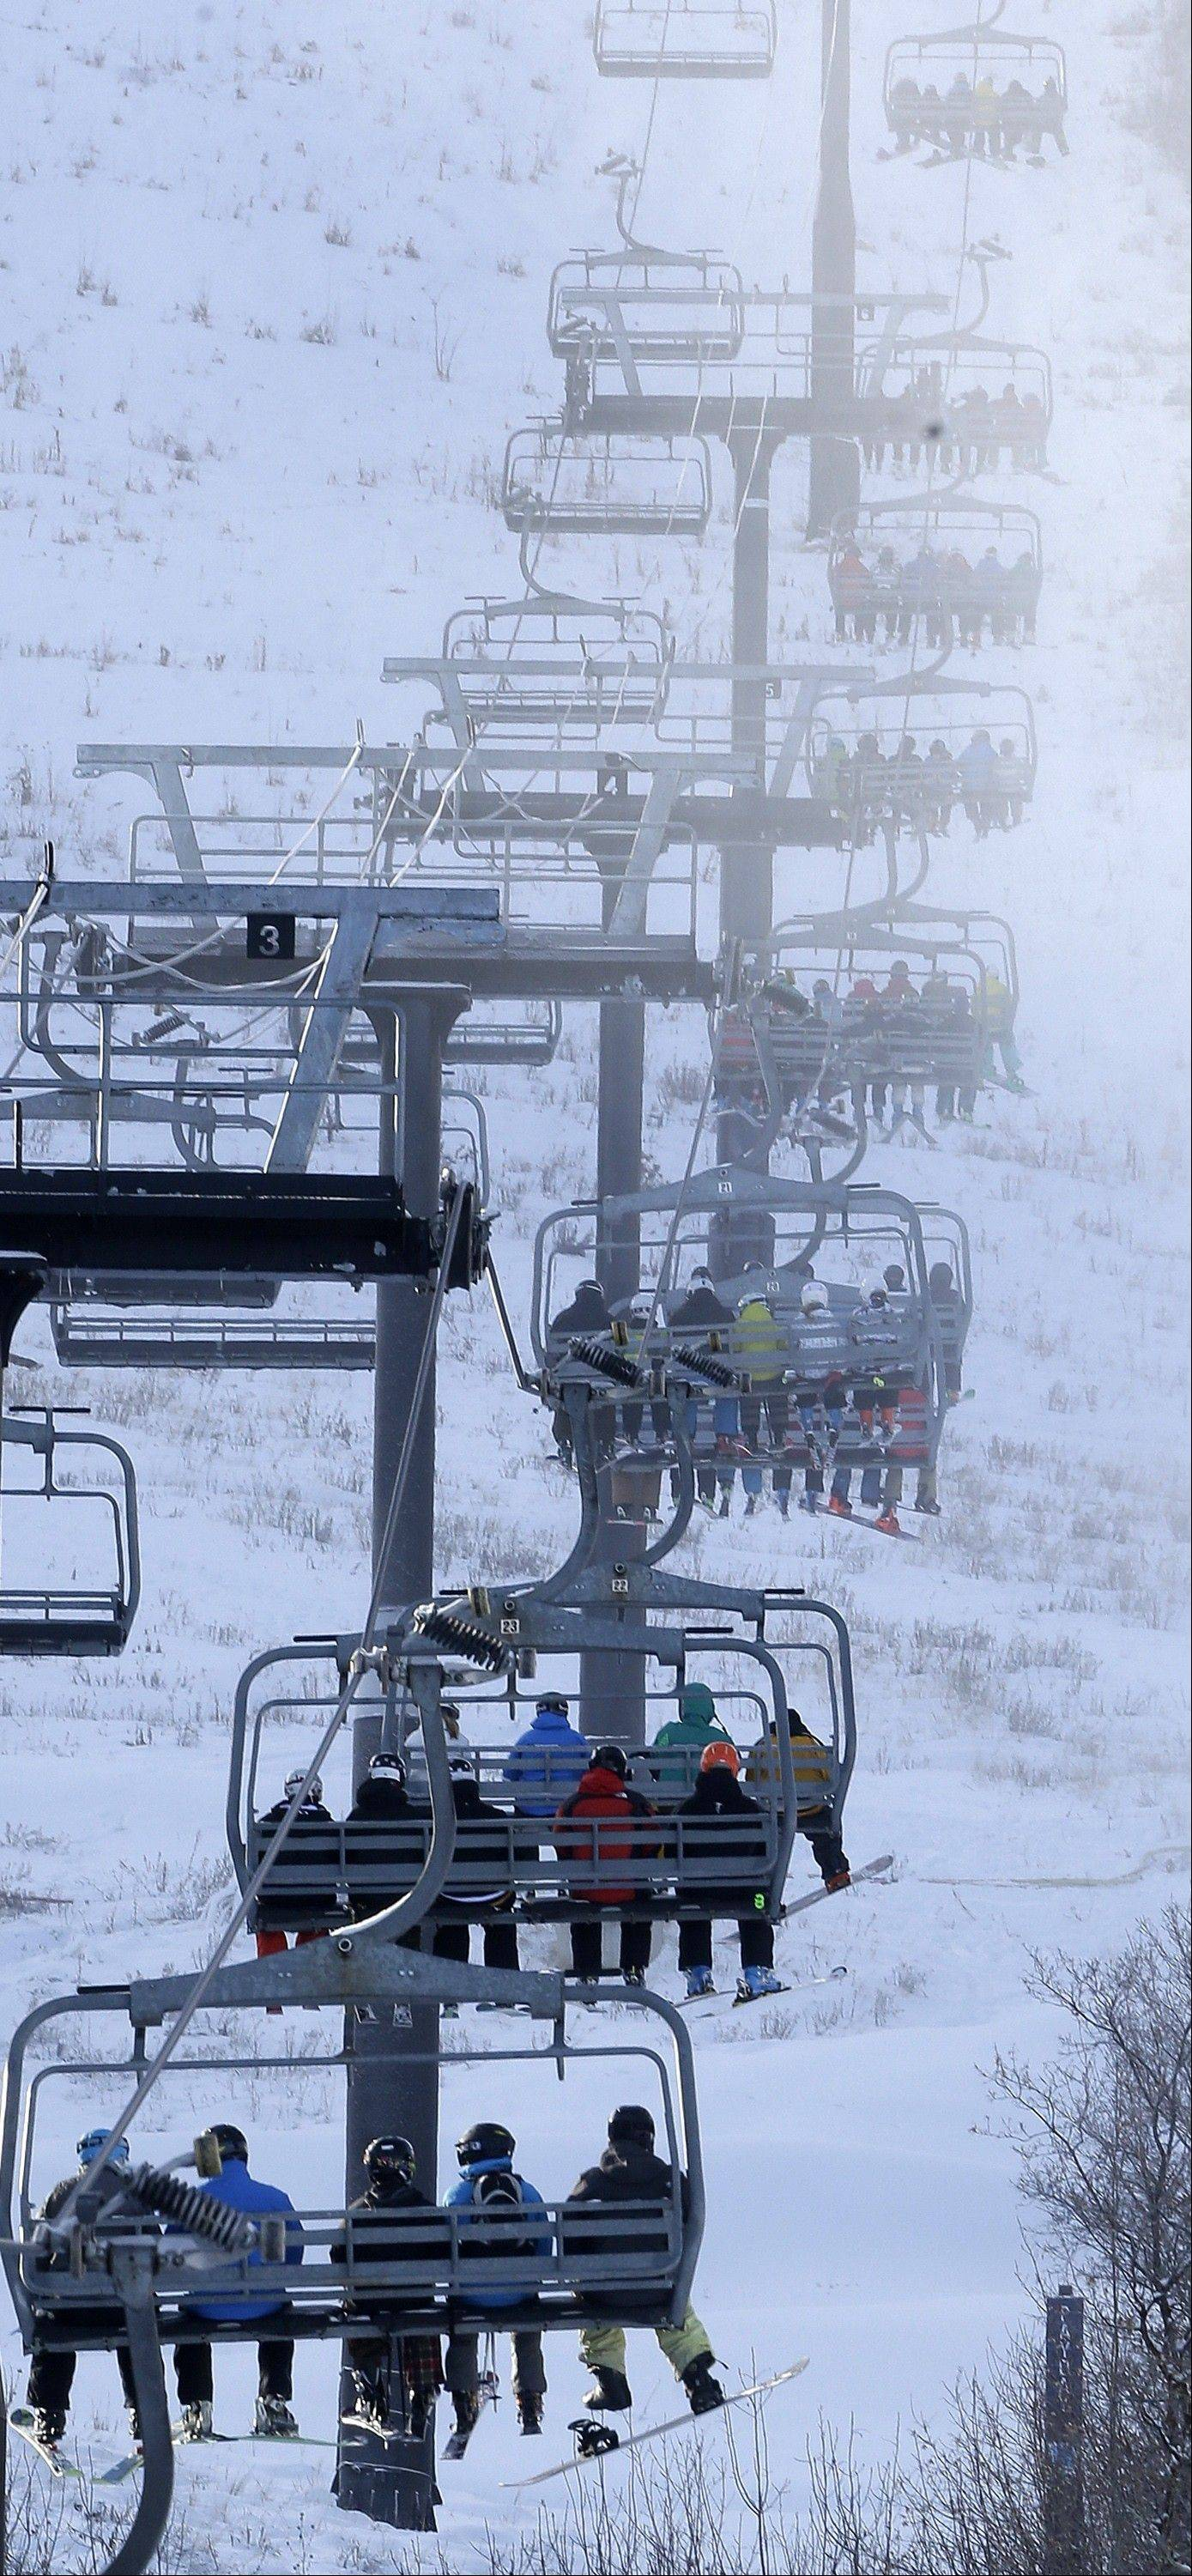 Various upgrades and cooperative weather are drawing more skiers to Utah this year.